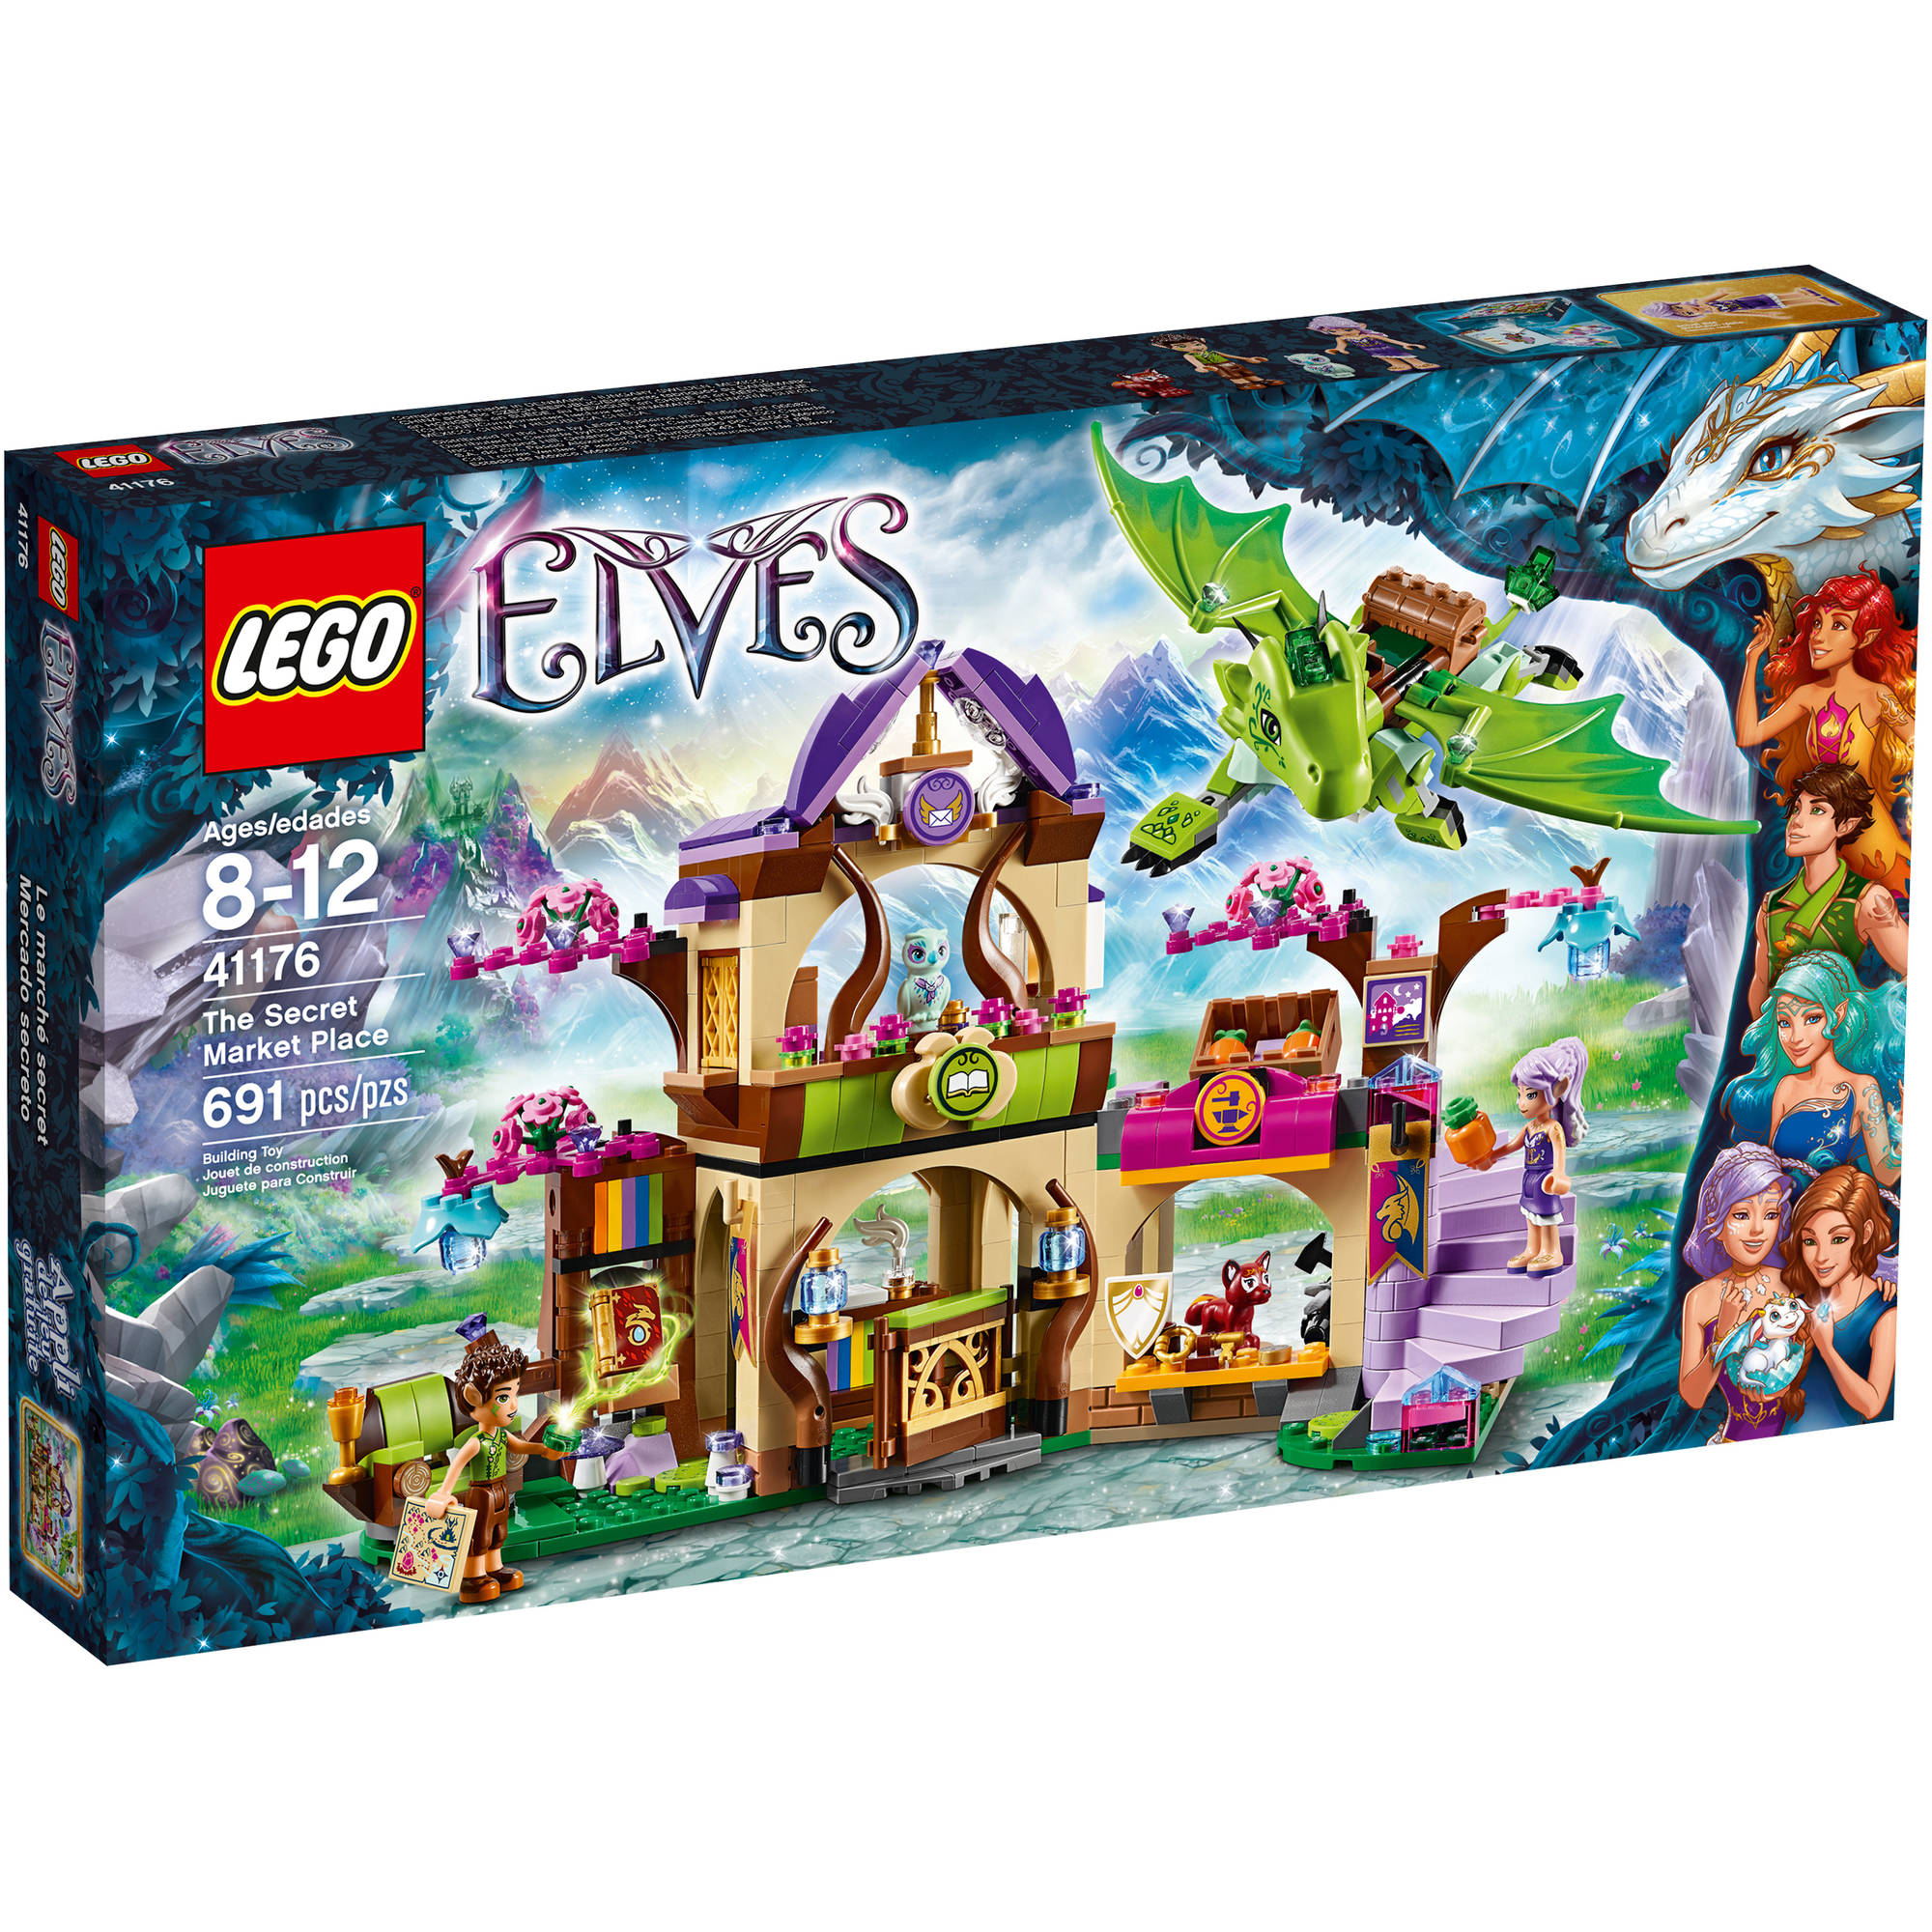 The Elves Market Place41176 Lego Secret N8vmwn0